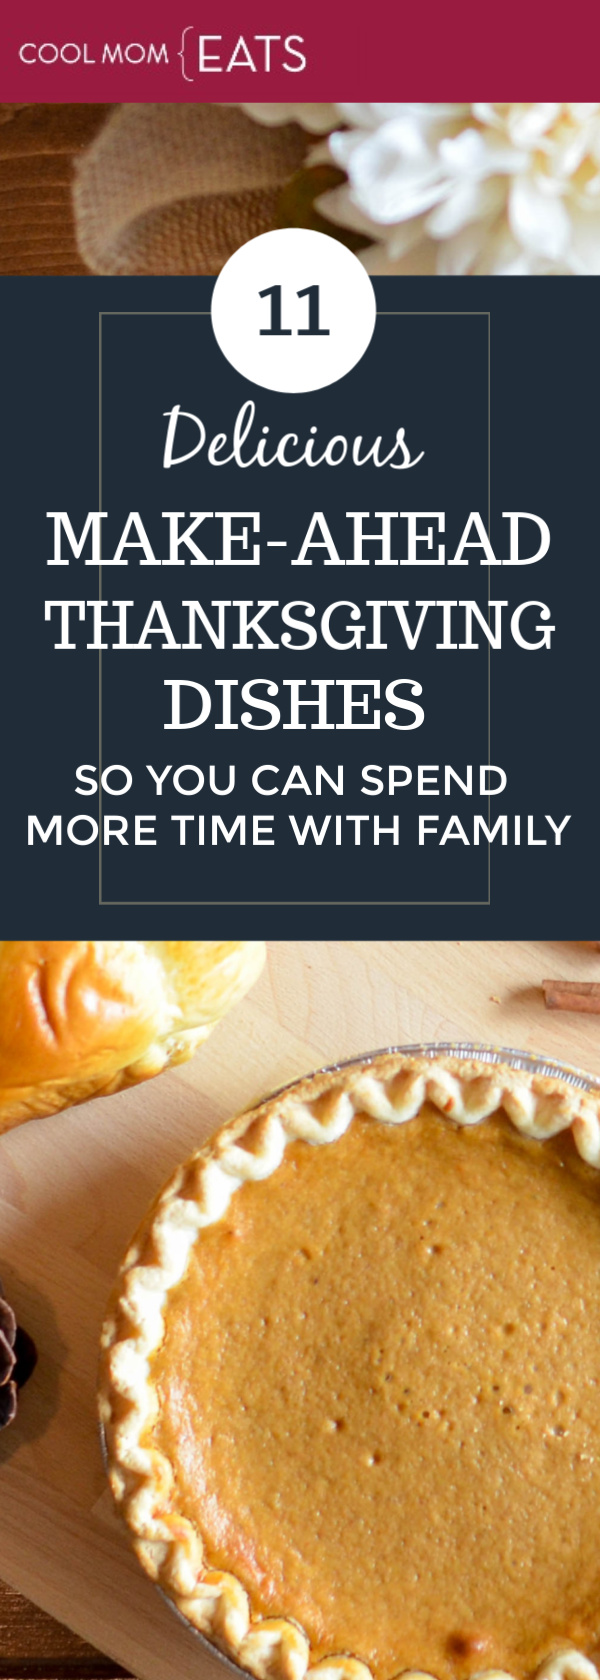 11 delicious make-ahead Thanksgiving dishes so you can spend more time with family (or football!) | coolmomeats.com